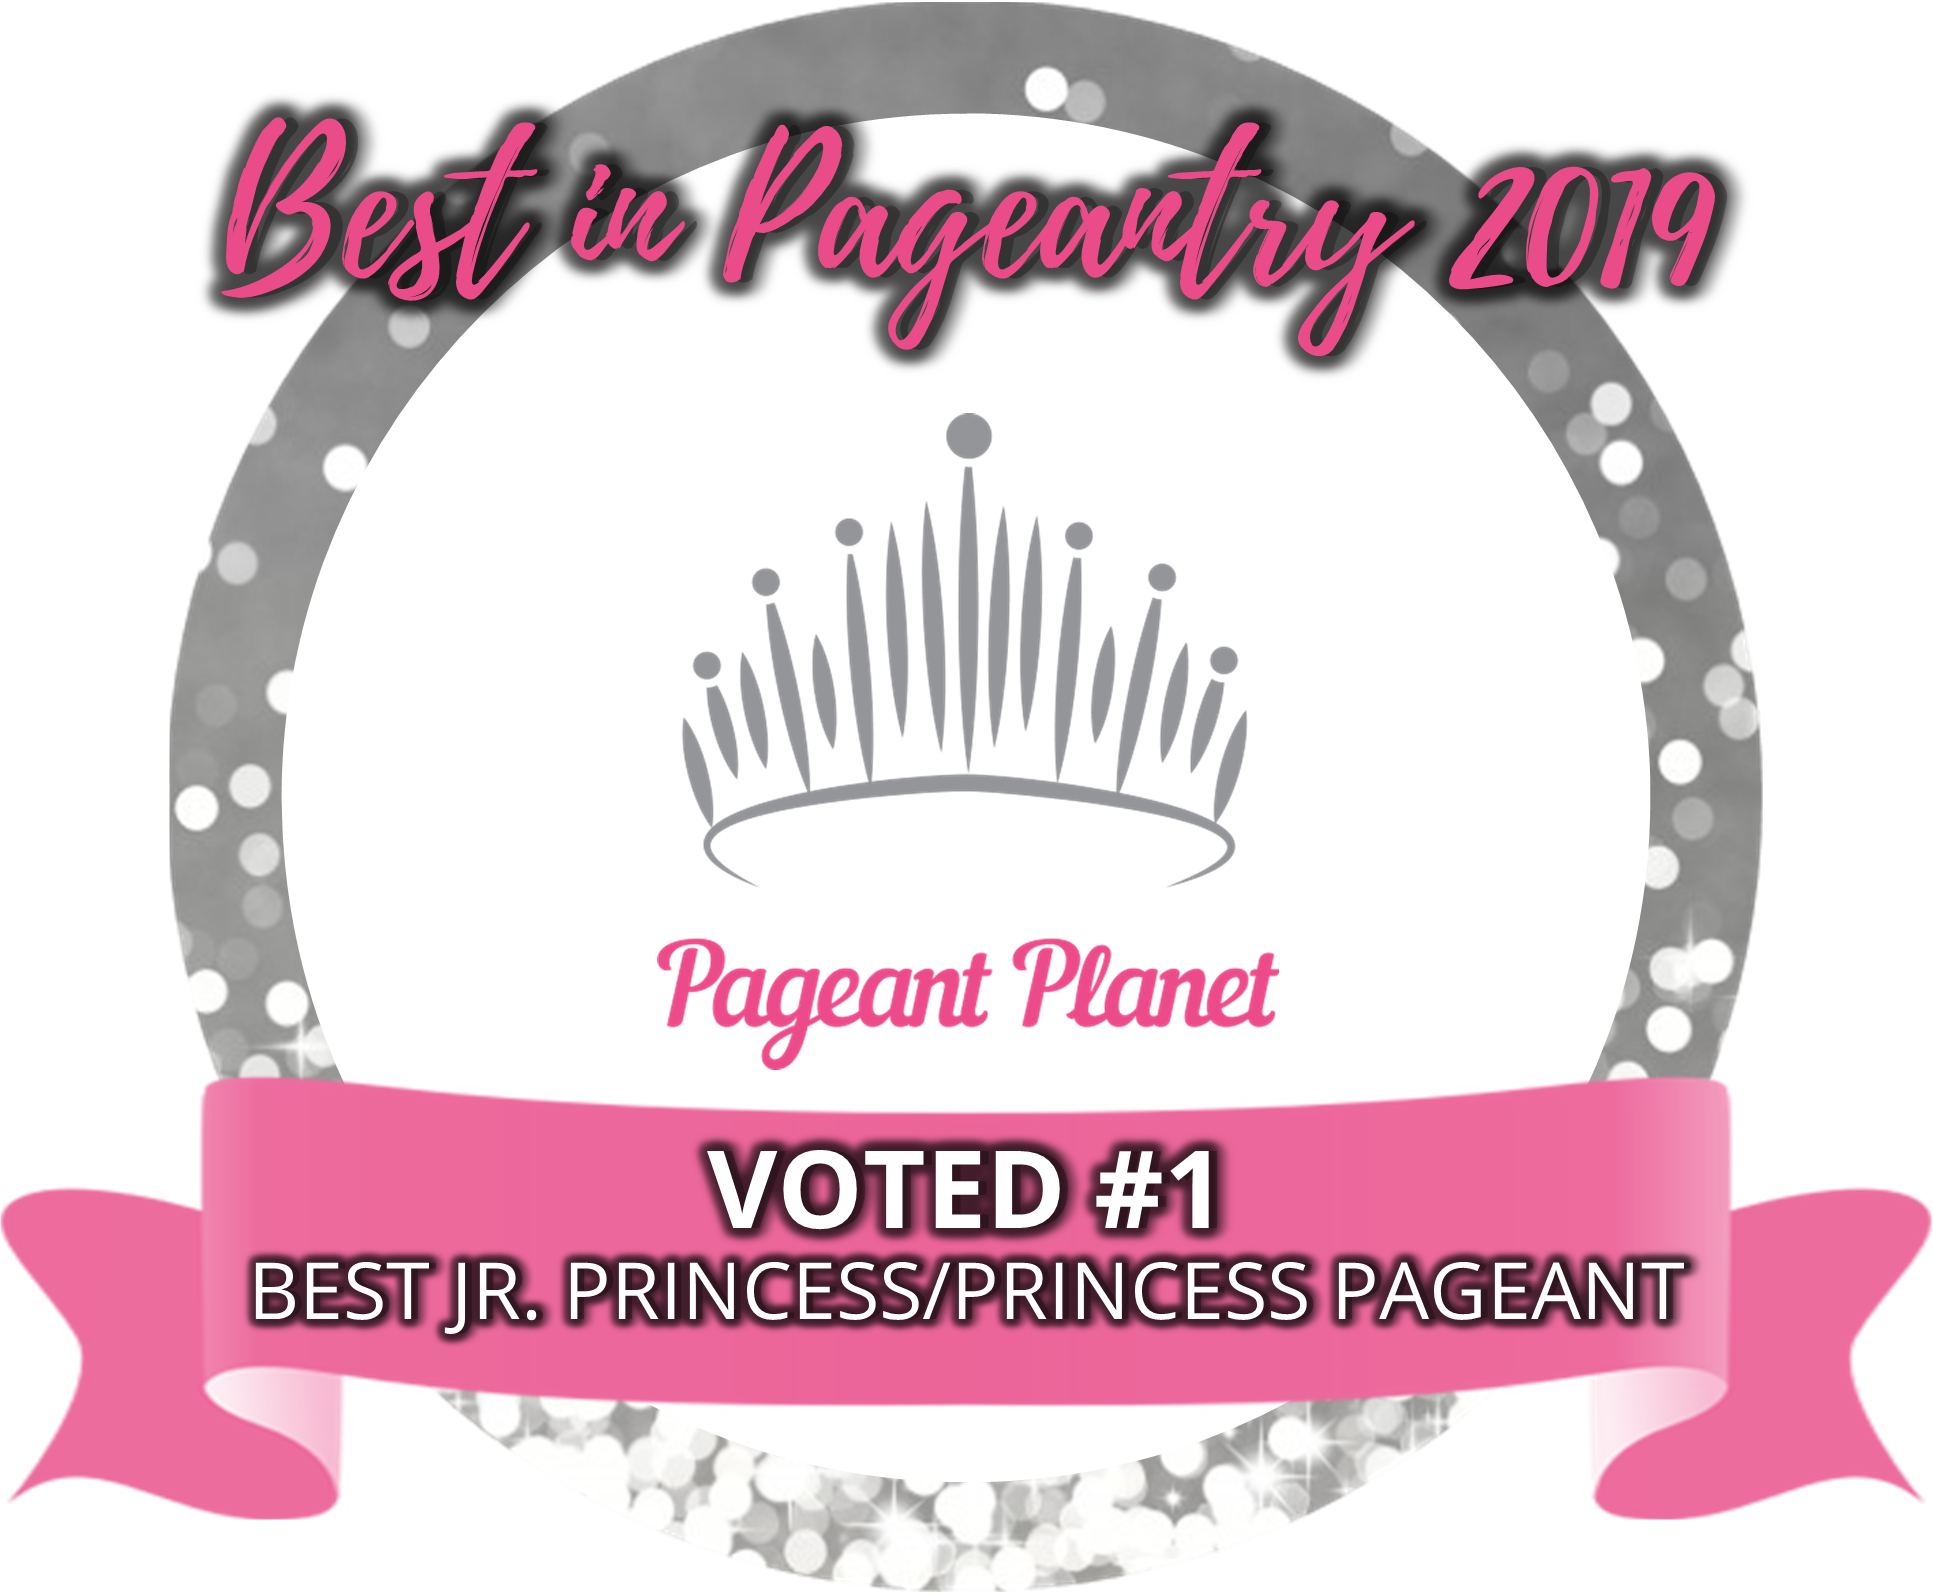 #1 Princess Pageant of 2019